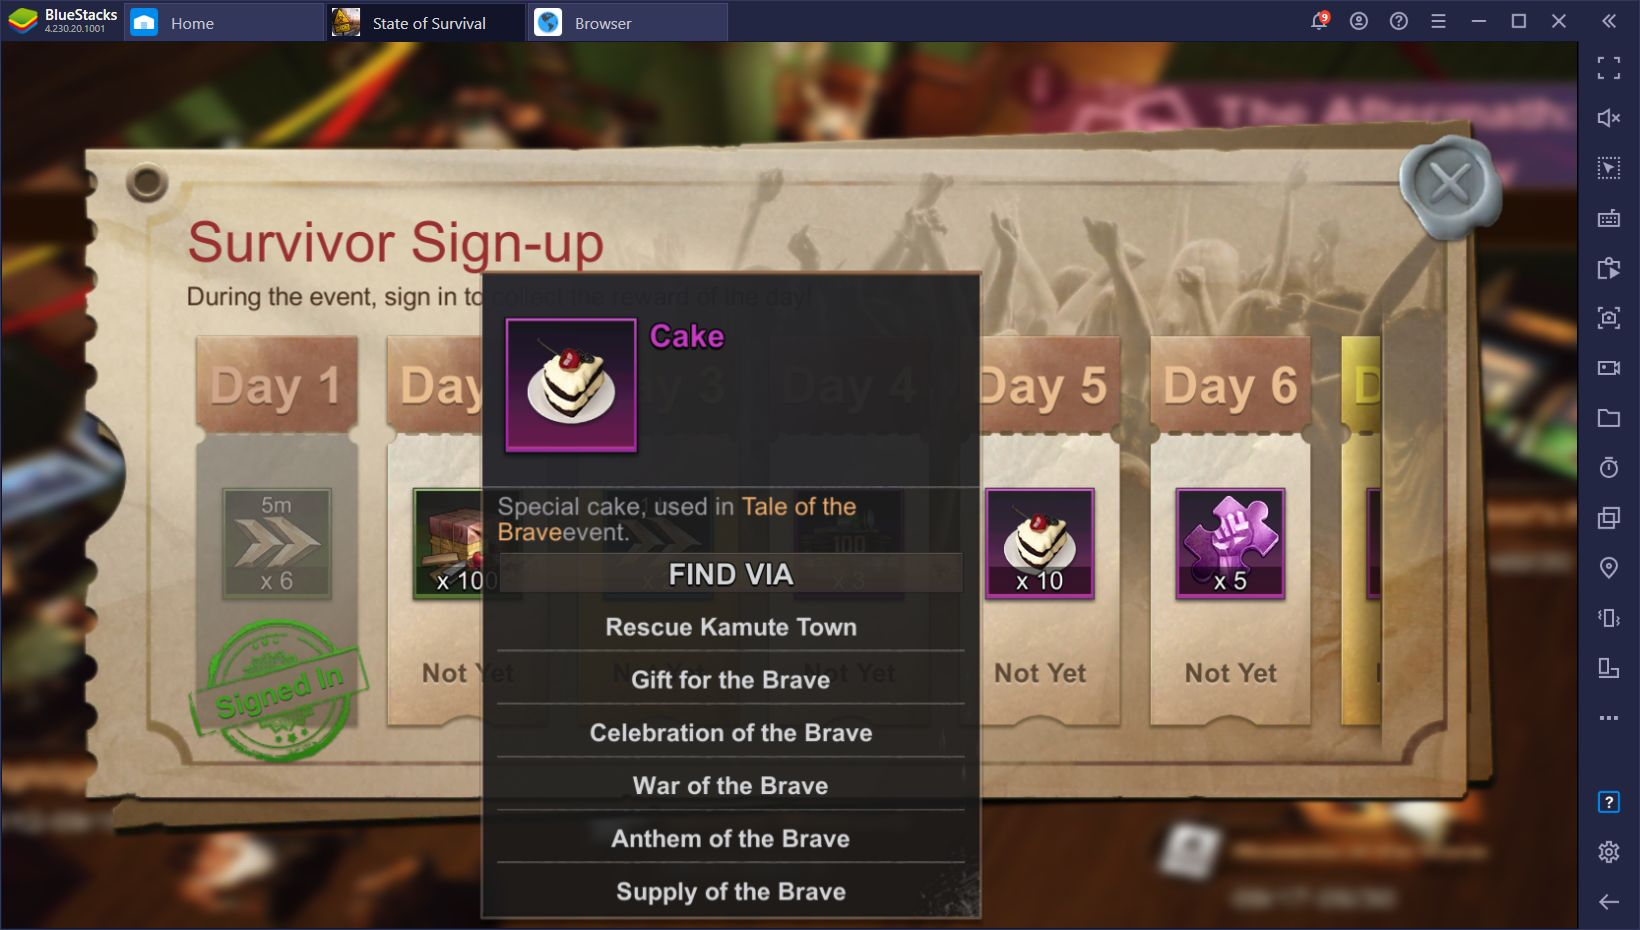 State of Survival Anniversary Event Guide